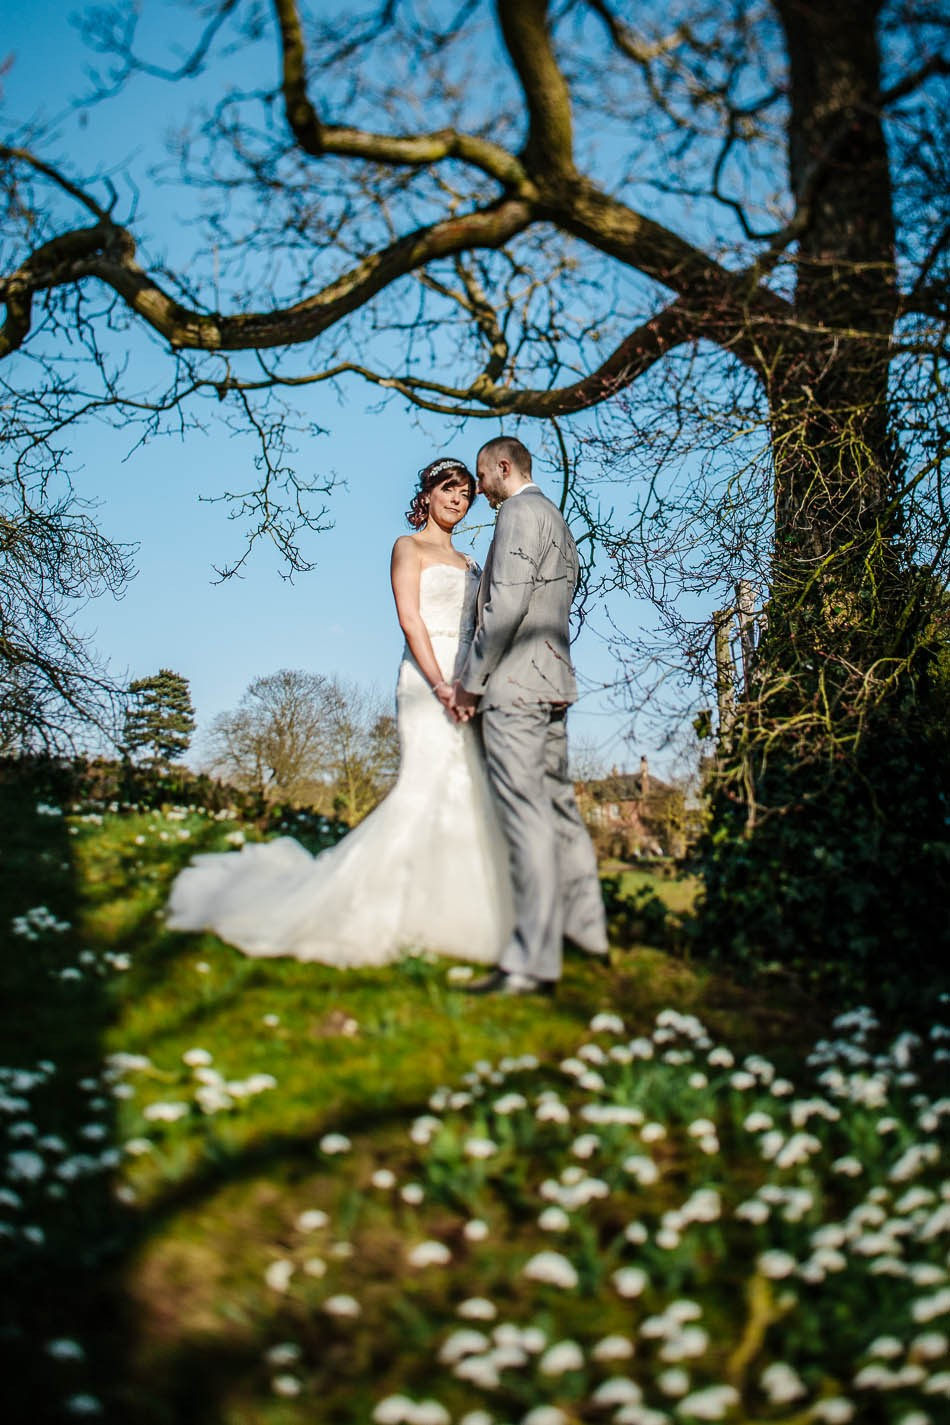 Hodsock priory winter wedding 408